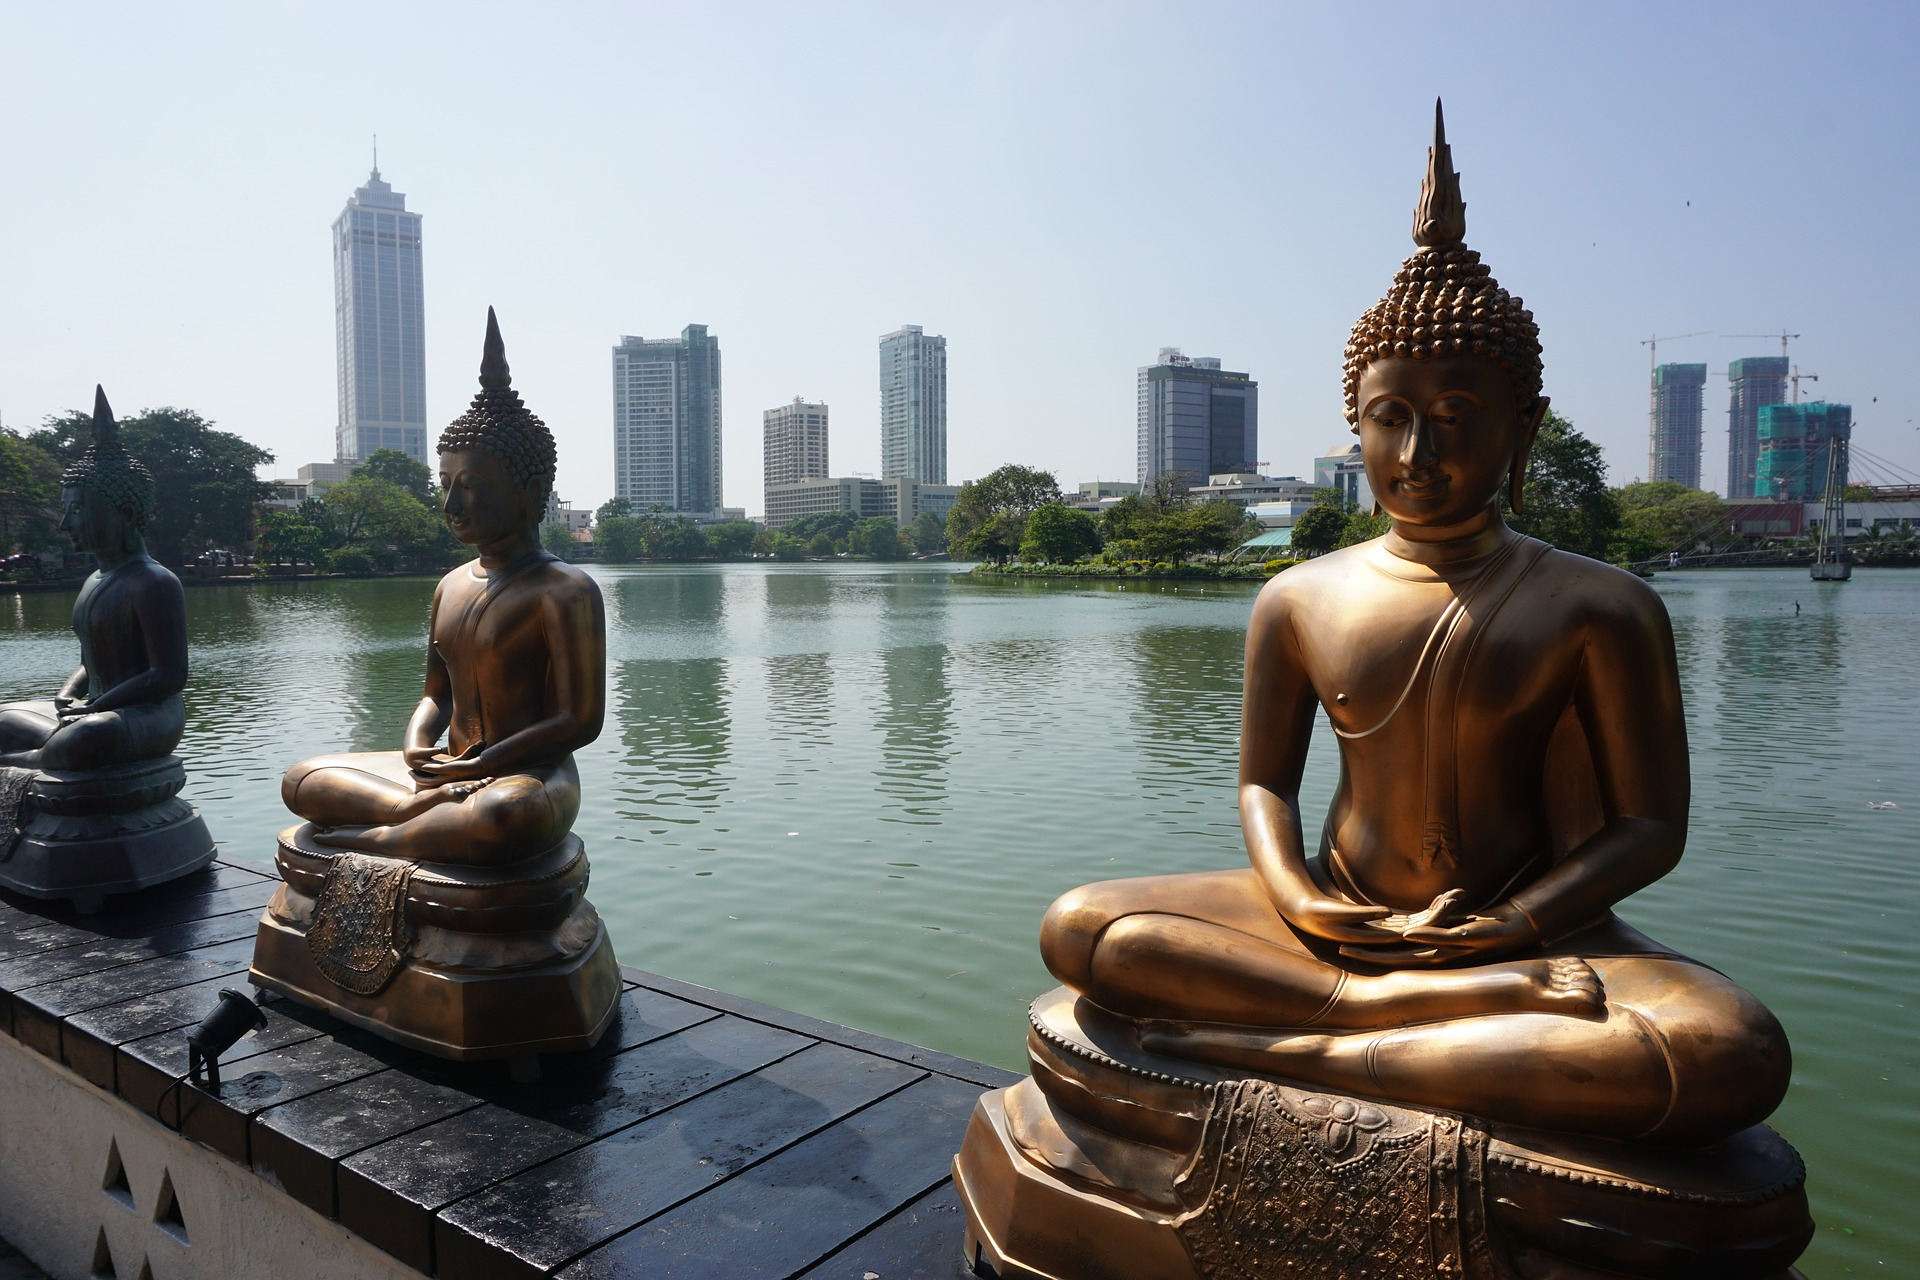 Day 09 - Colombo City Tour